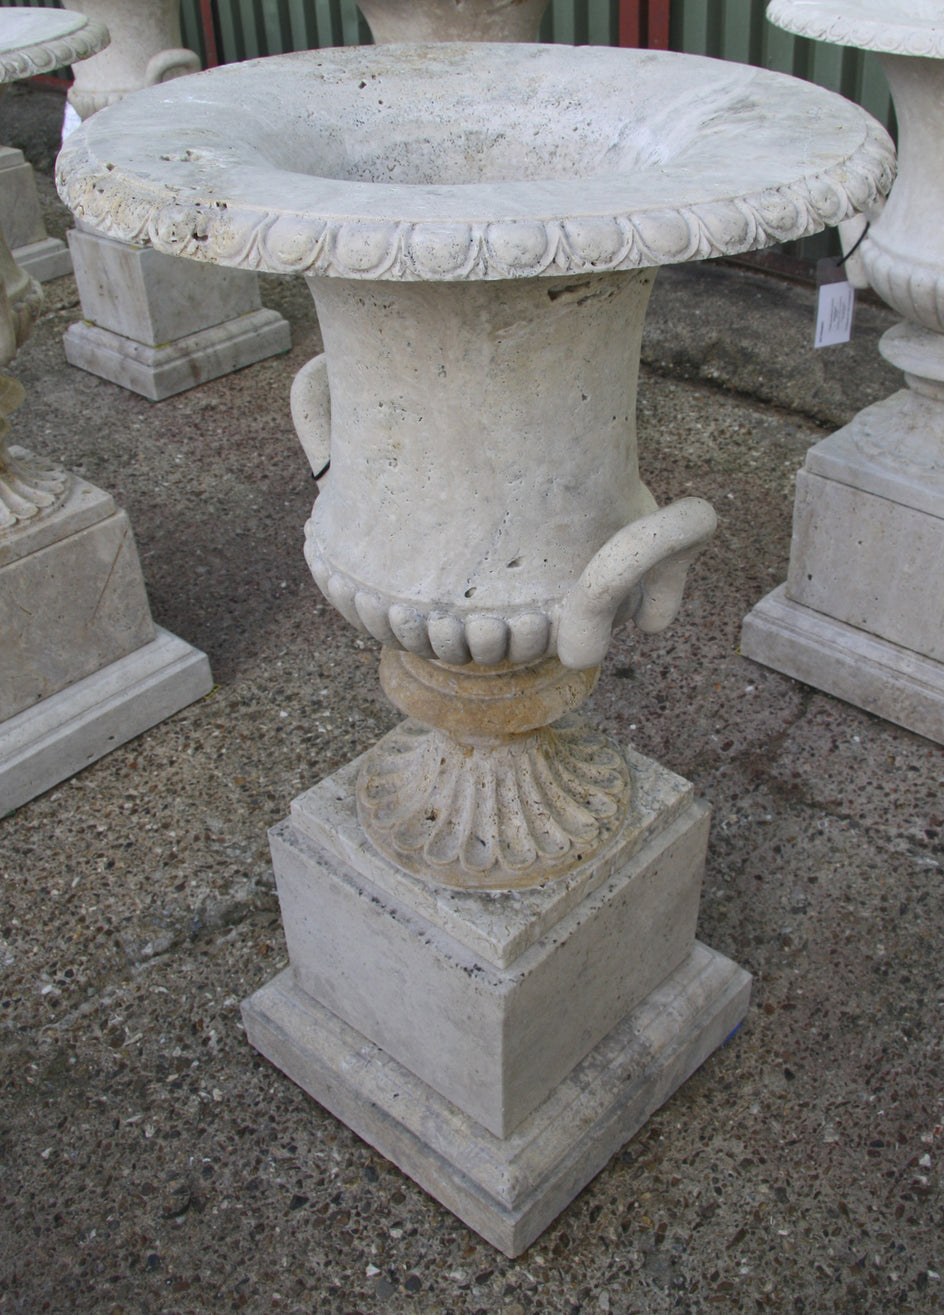 Campana urn & pedestal / travertine 012 - 1142 mm (H)